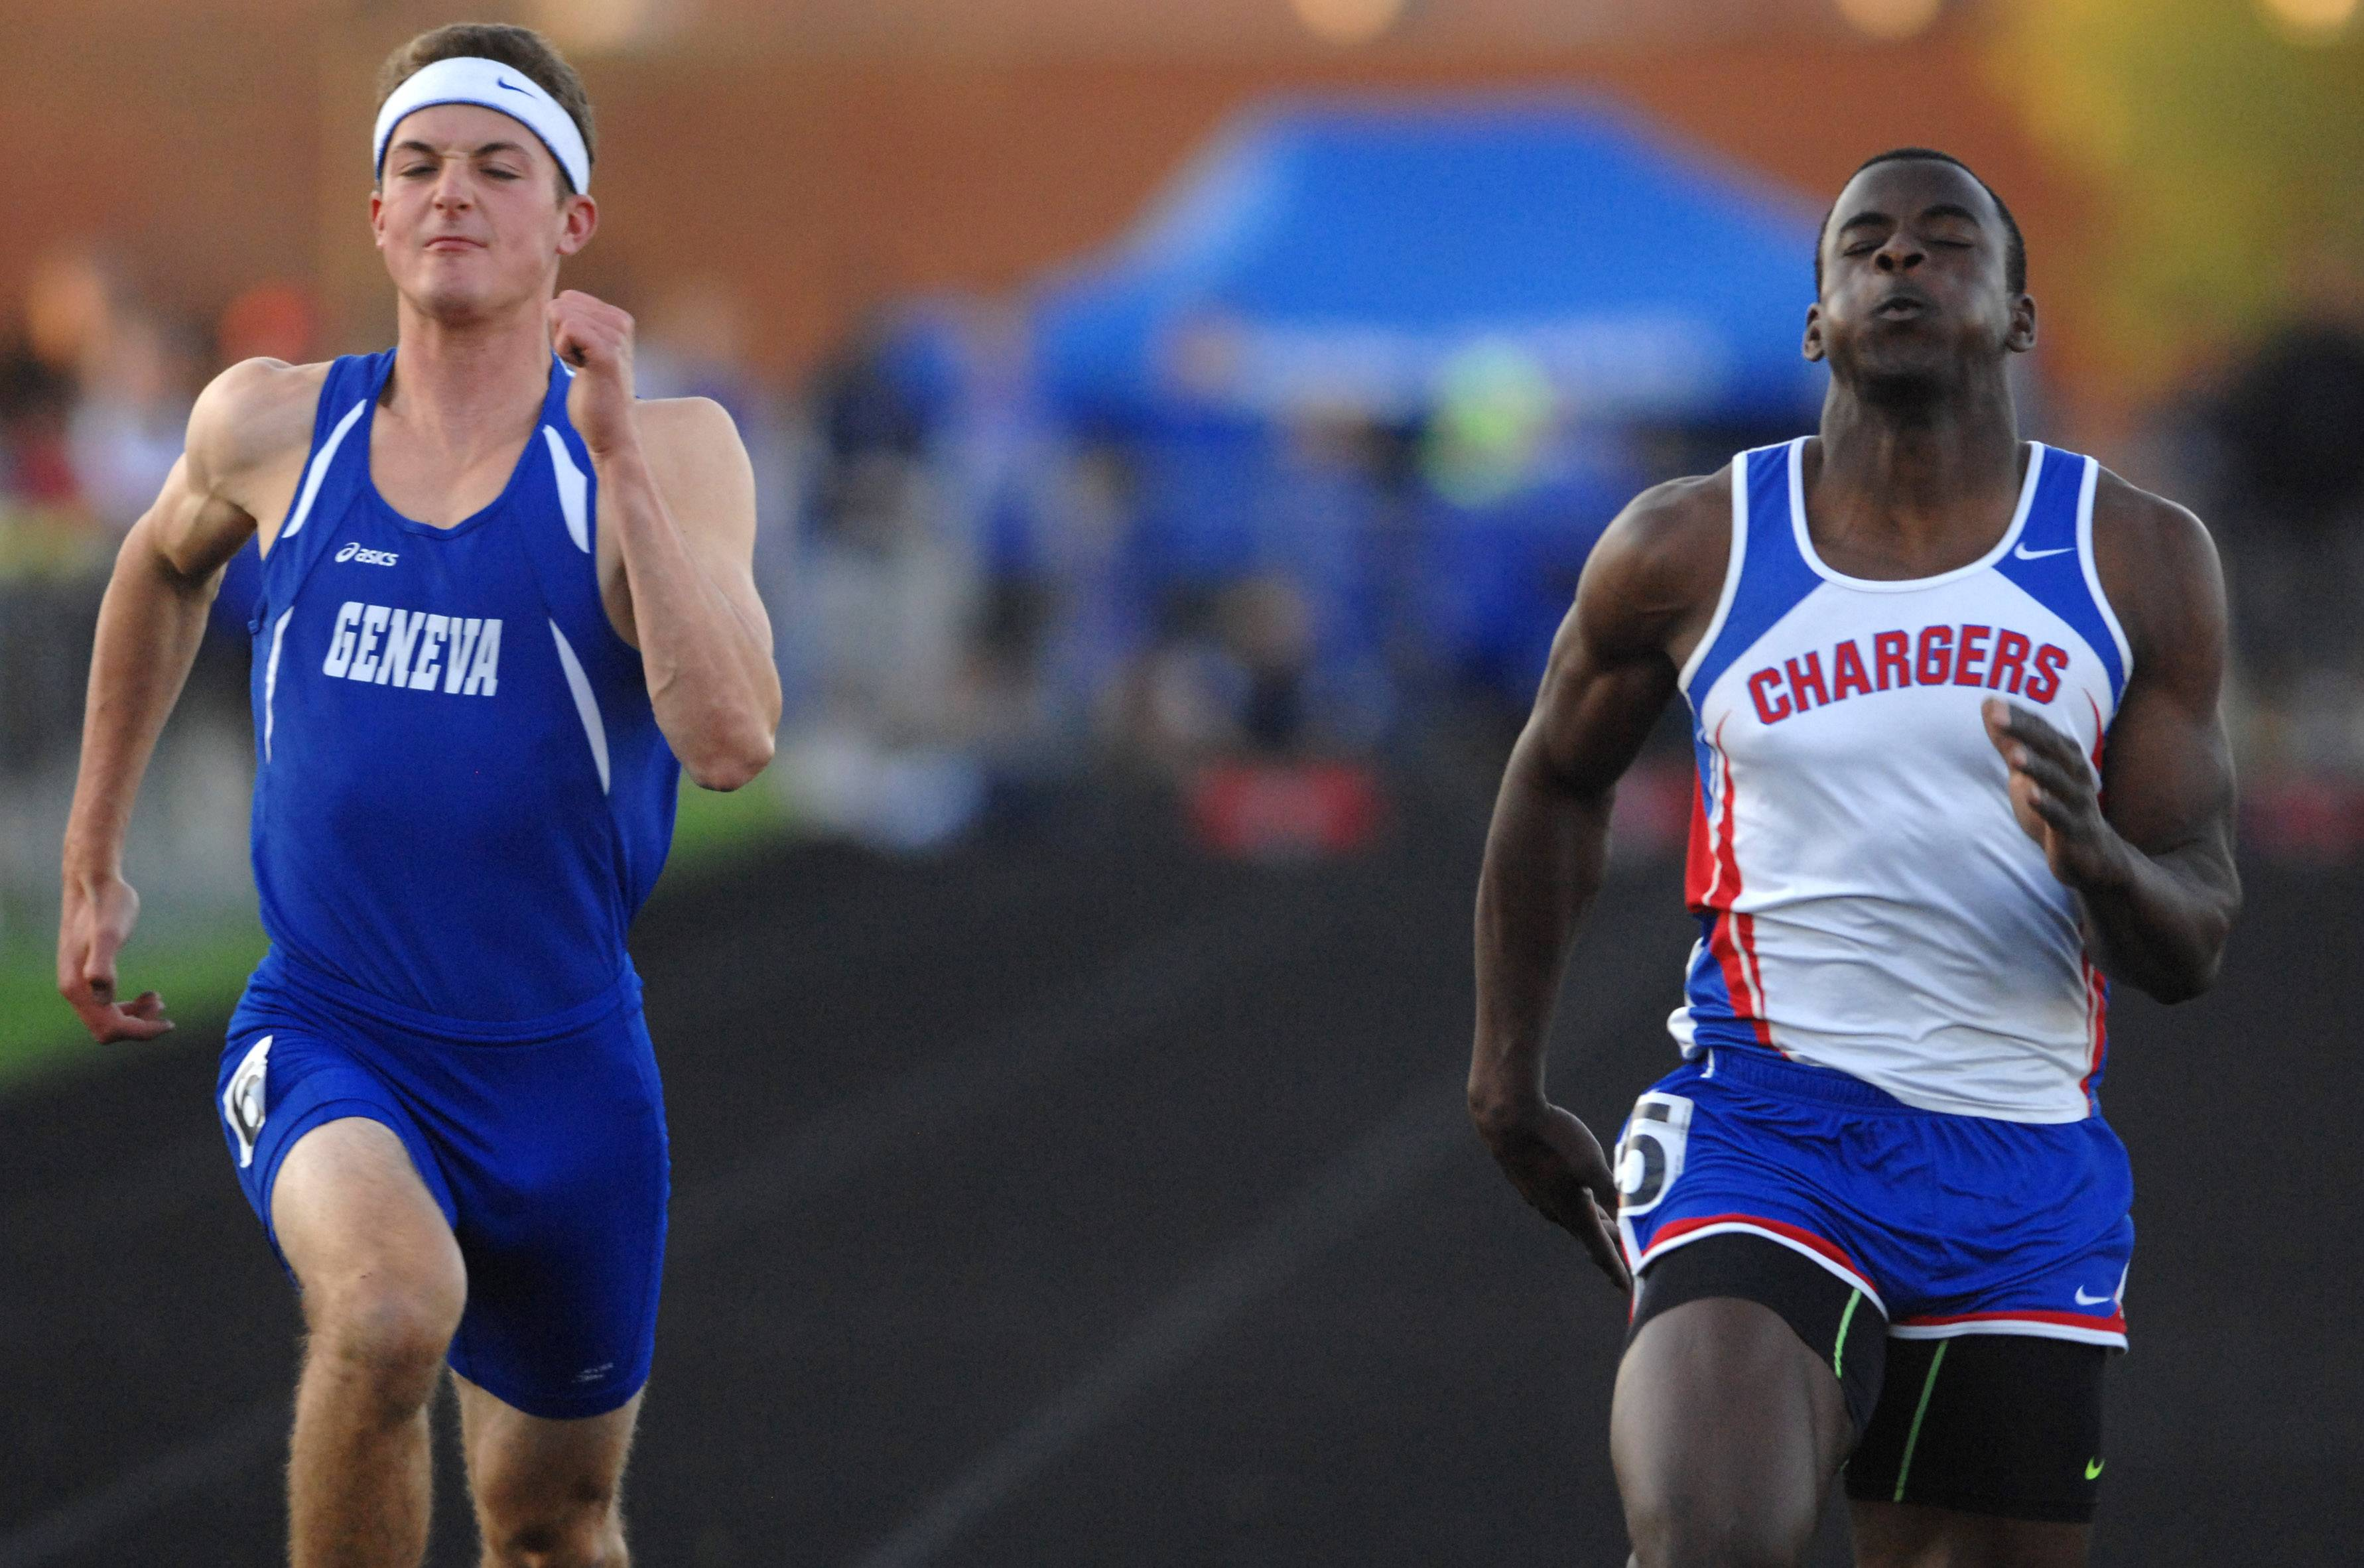 Milik Dunner of Dundee-Crown wins the 100-meter dash with Tim Roels of Geneva at left during the Kane County boys track meet in Streamwood Friday.